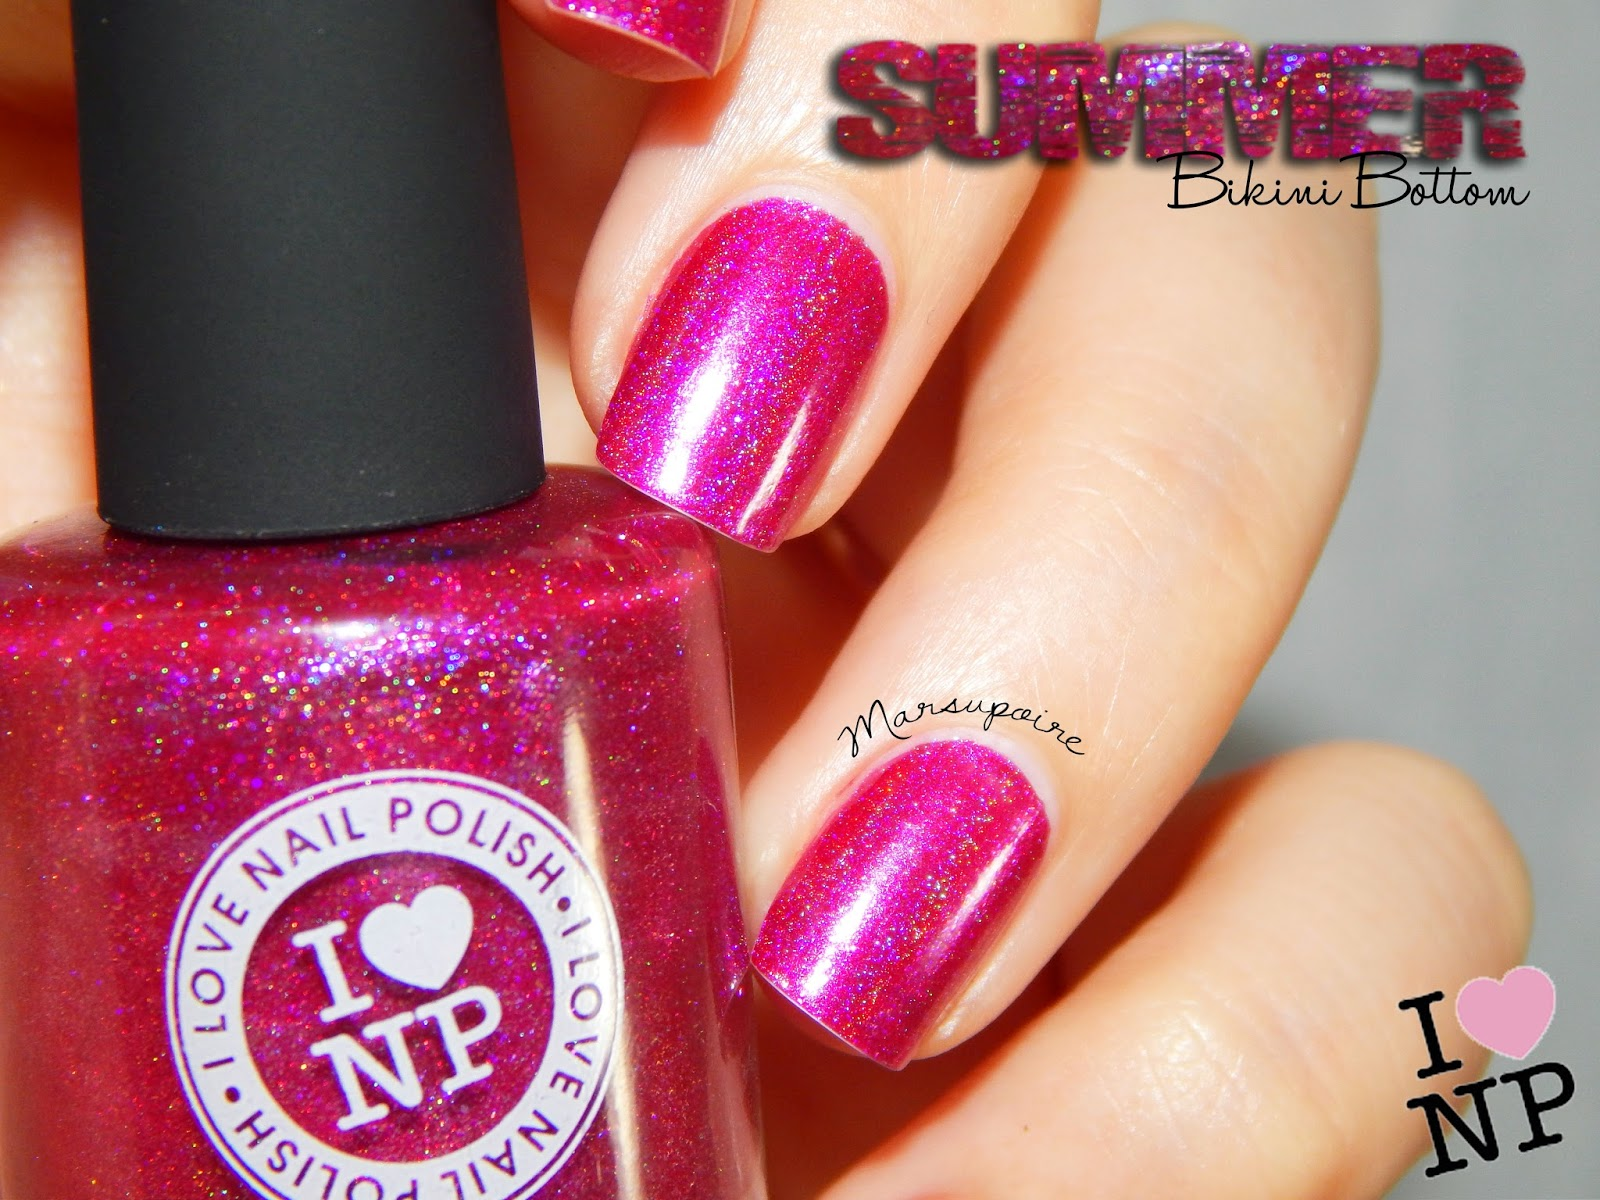 Vernis_ILNP_Bkini_Bottom_flash